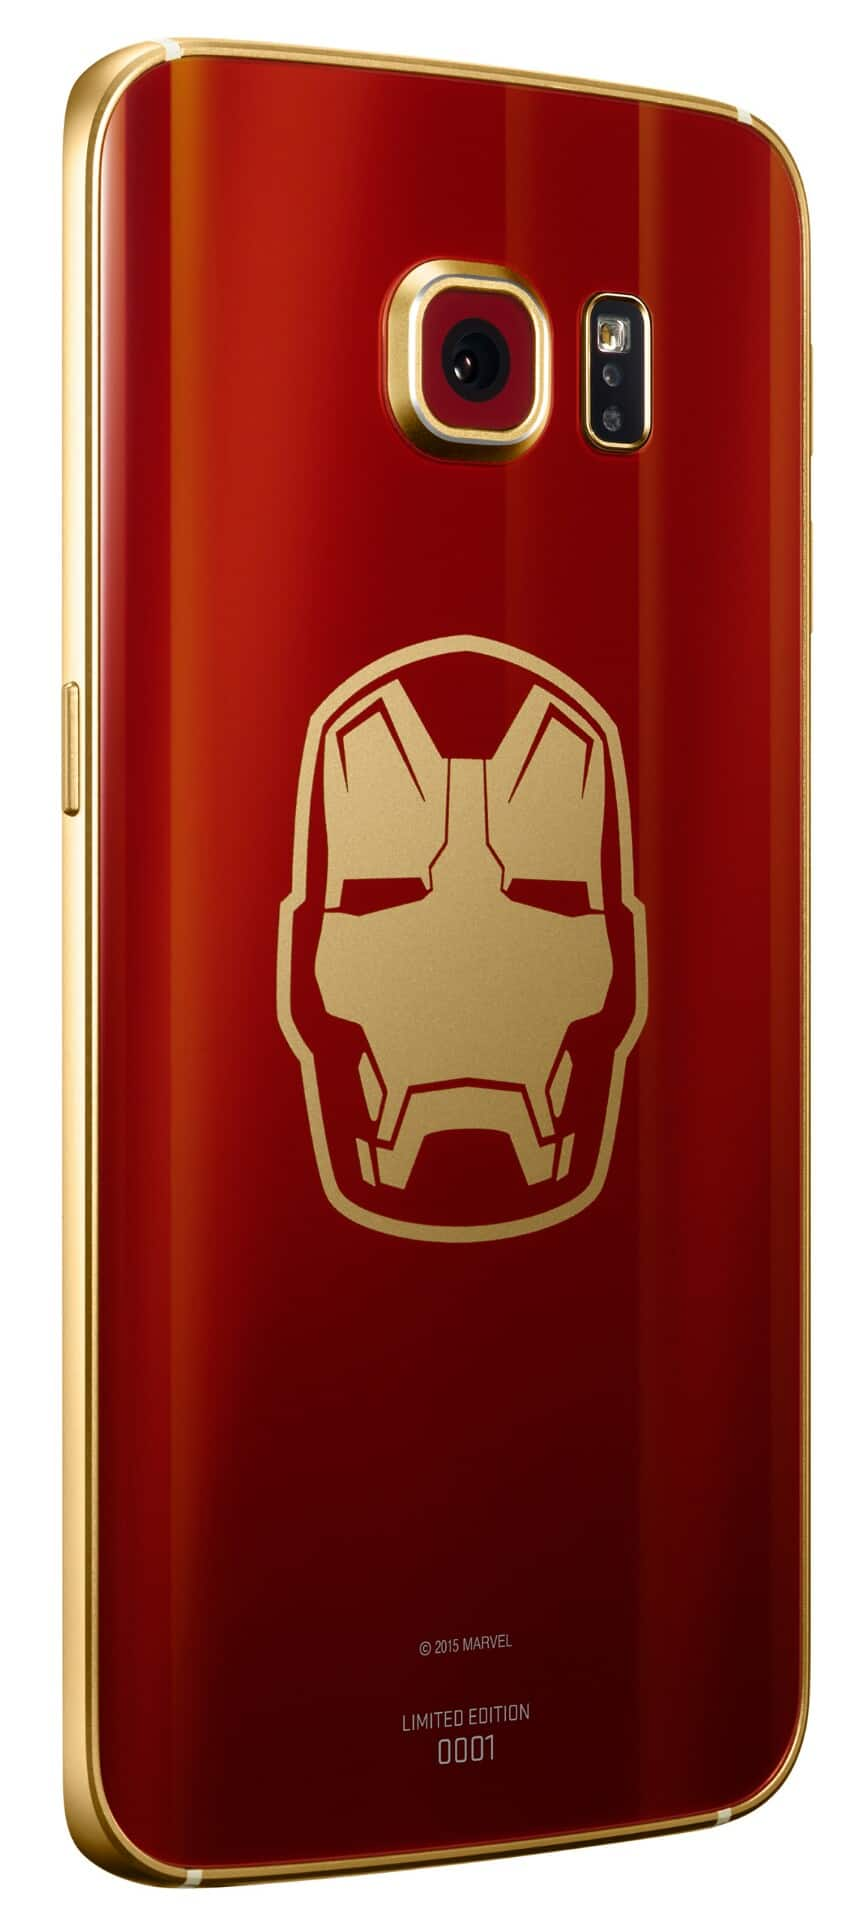 Galaxy S6 edge Iron Man Limited Edition 5 wm